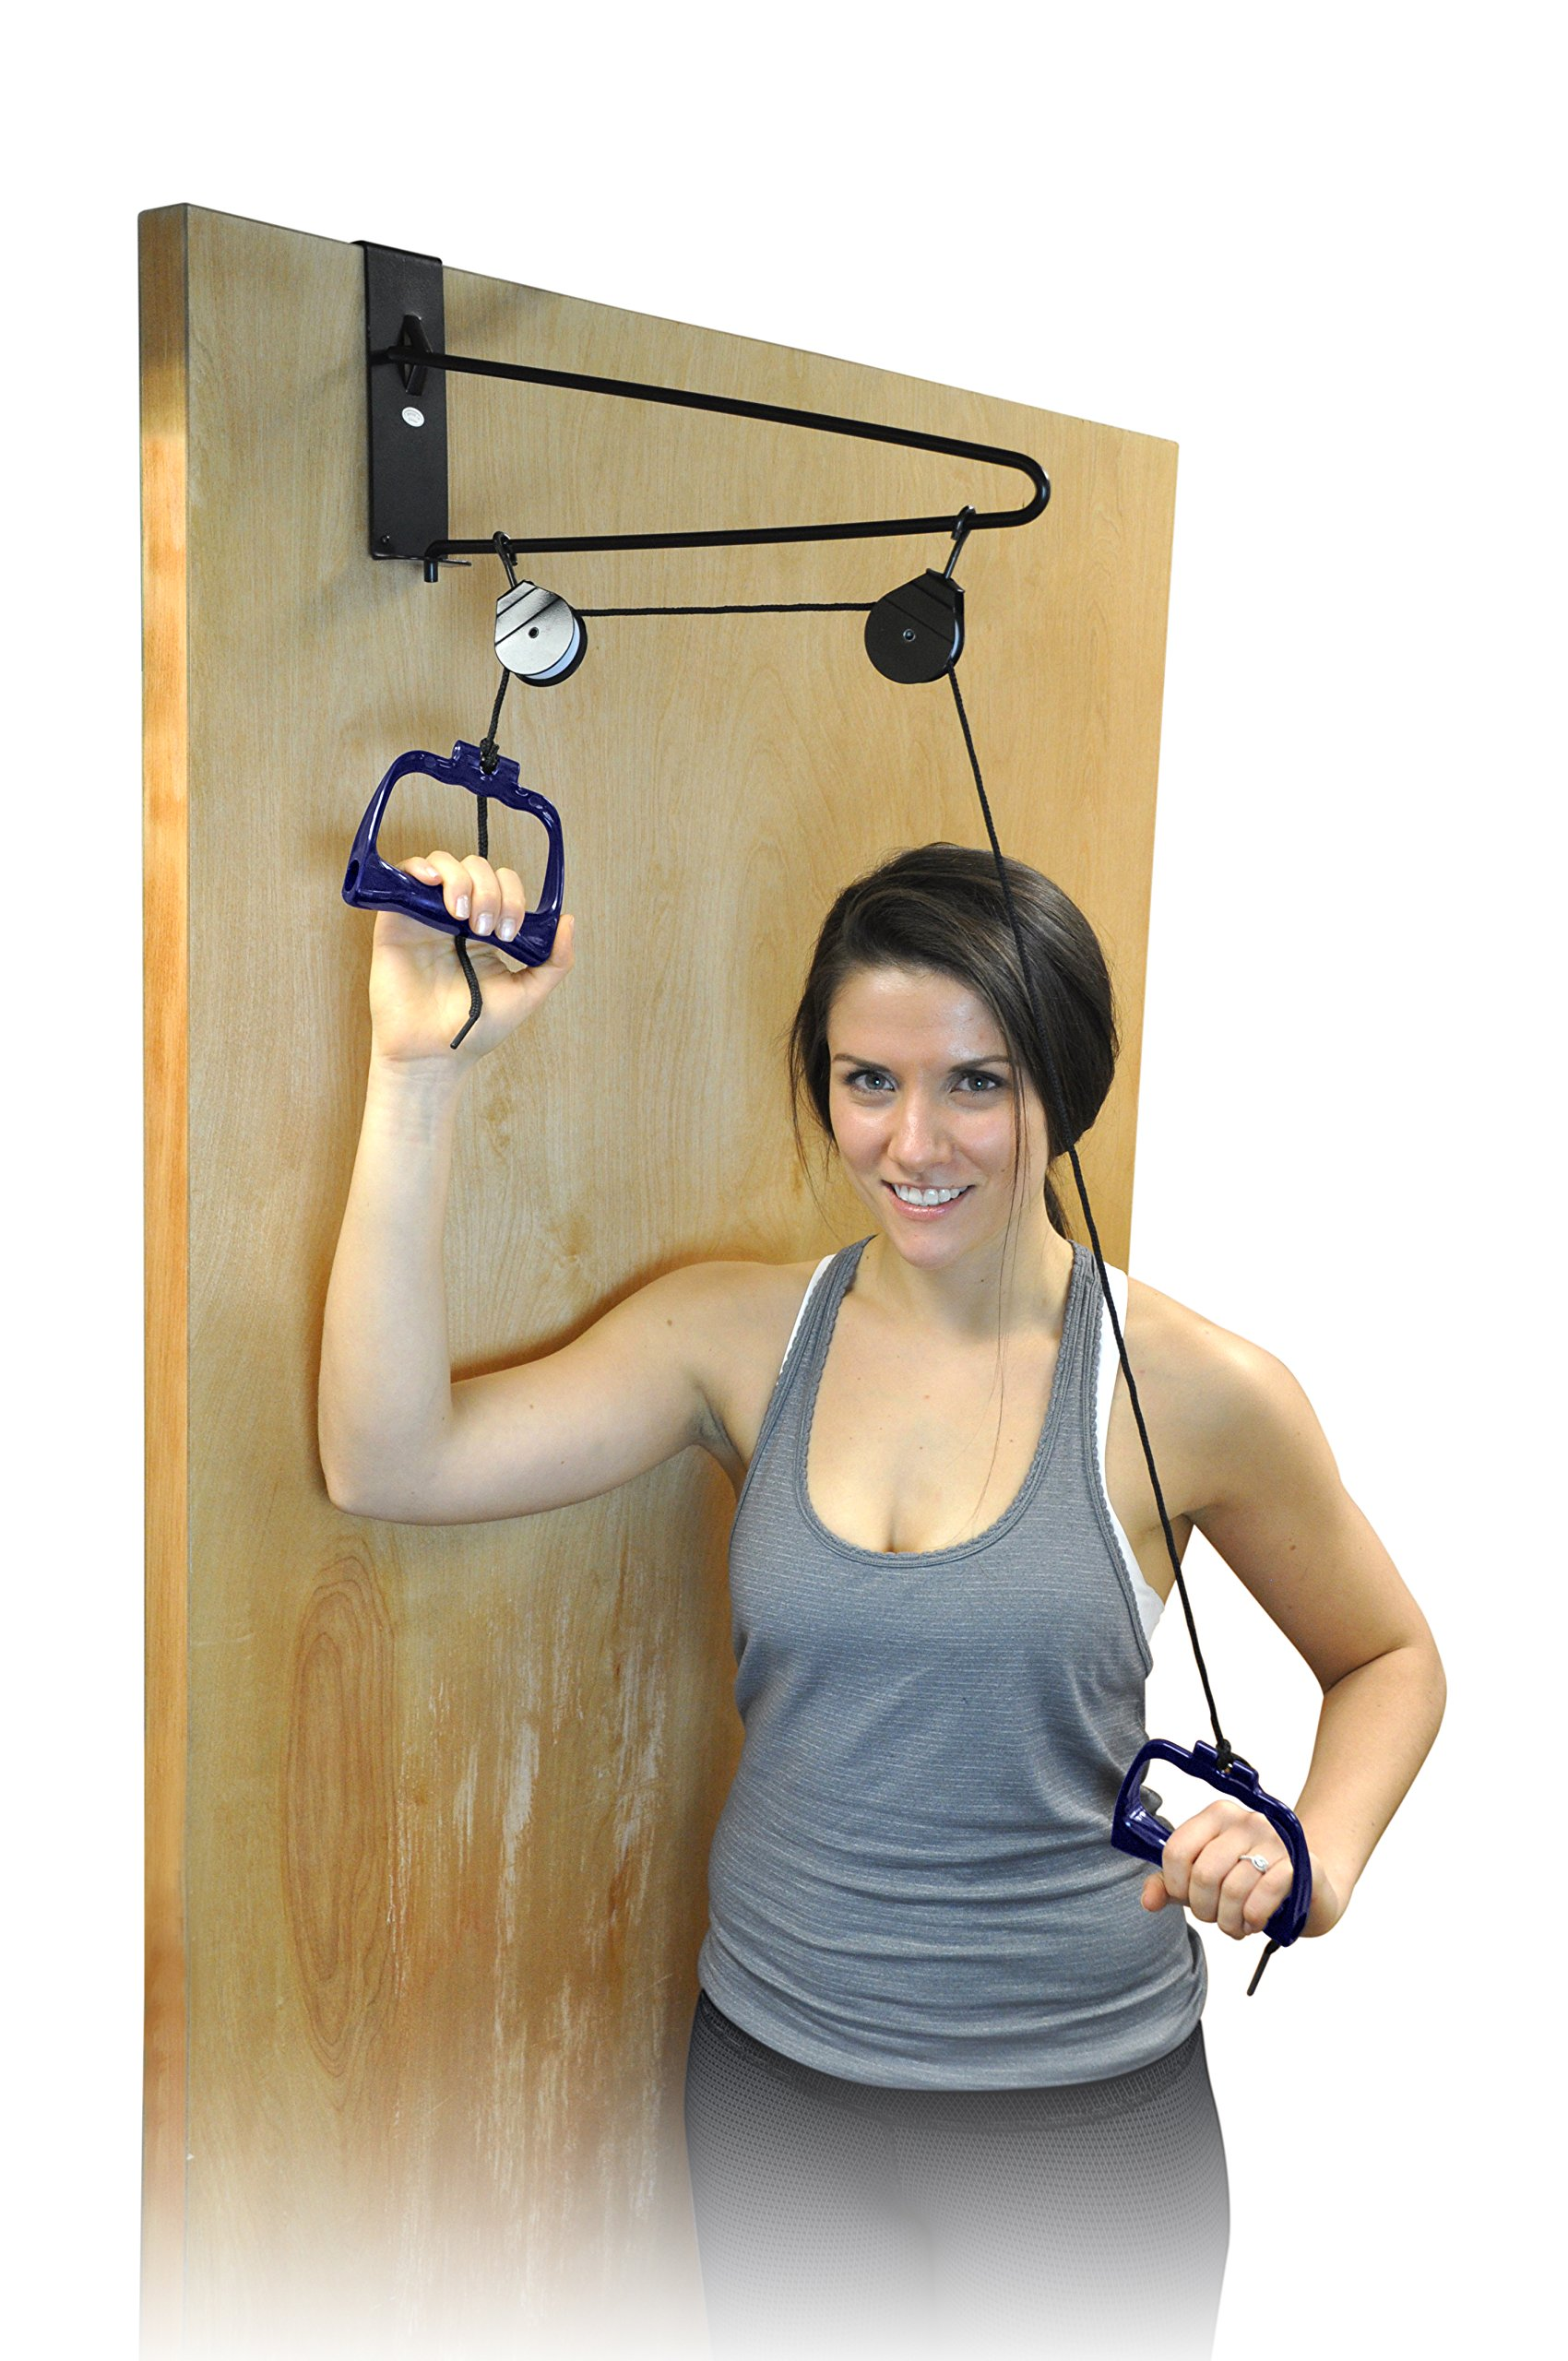 Exercise Overdoor Shoulder Pulley - Home Stretching, Physical Therapy, Rehab & Muscle Toning Fitness Equipment - Overhead Workout System & Arm Exerciser That Increases Your Motion Range - Complete Set